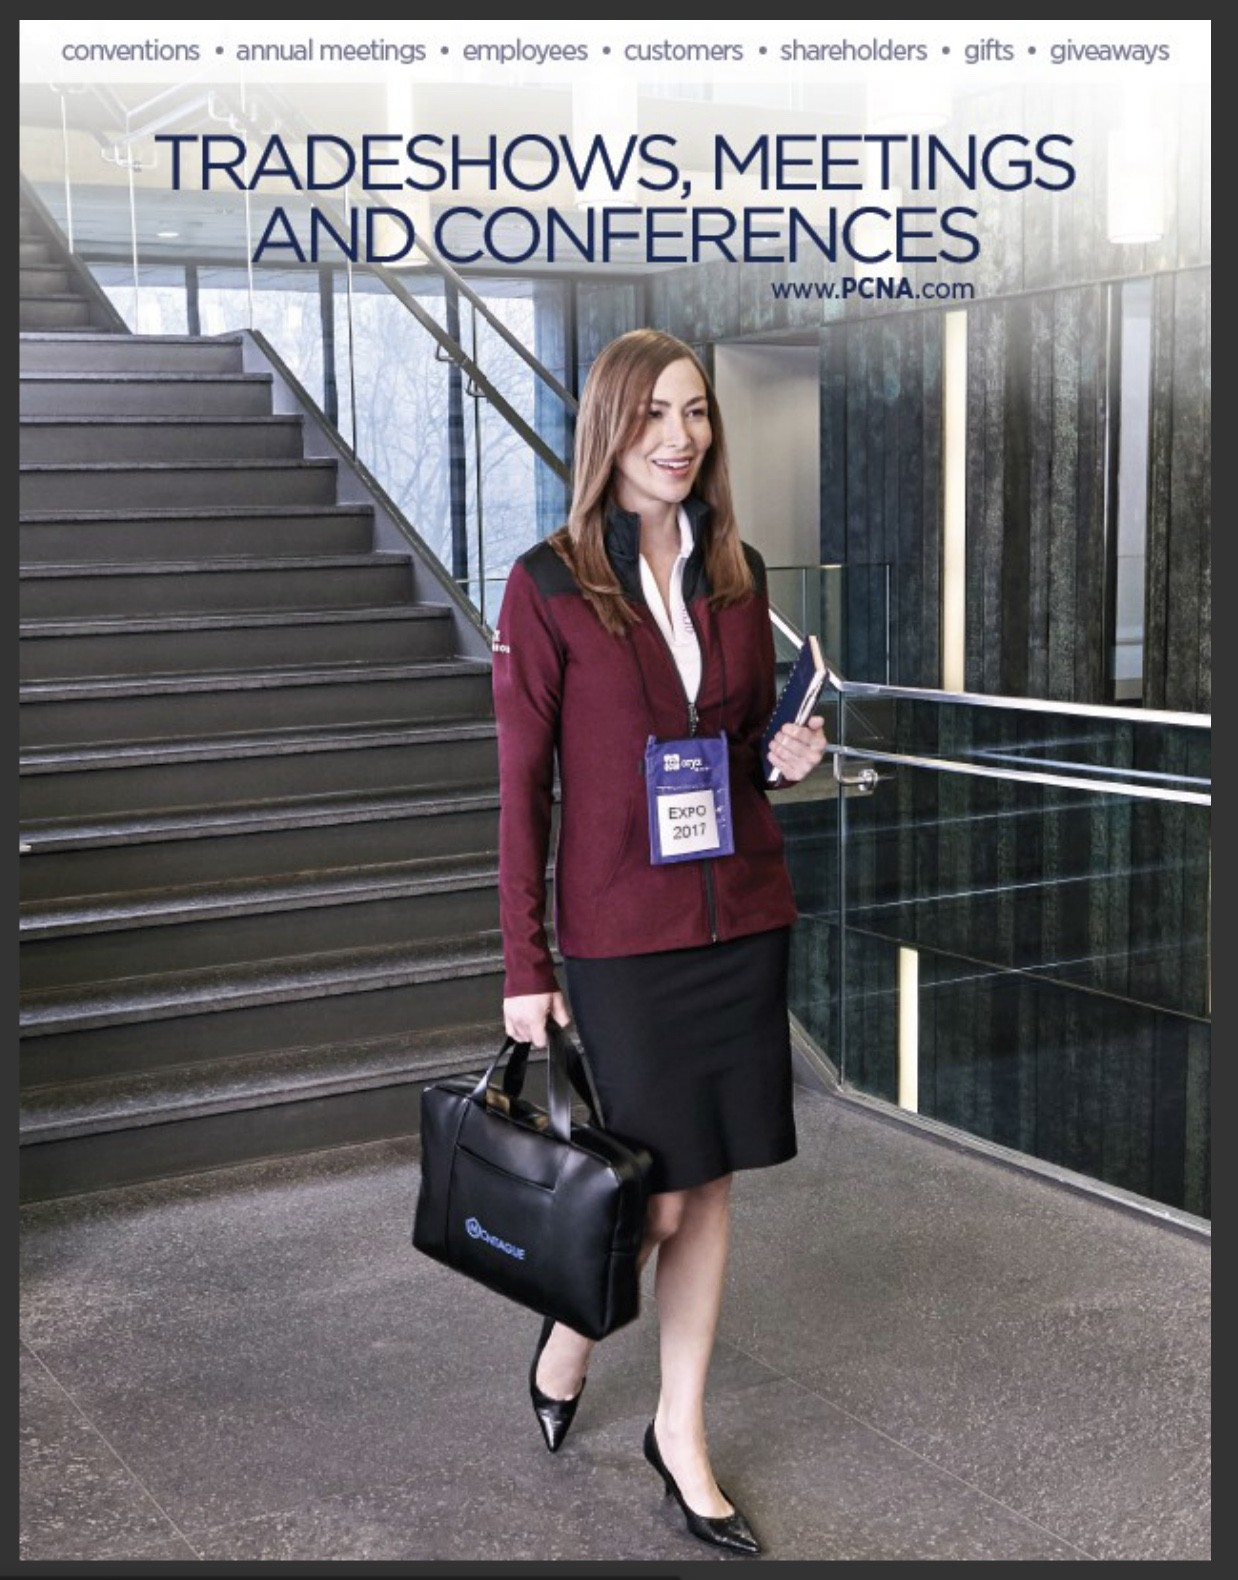 PCNA TRADESHOW MEETINGS & CONFERENCES